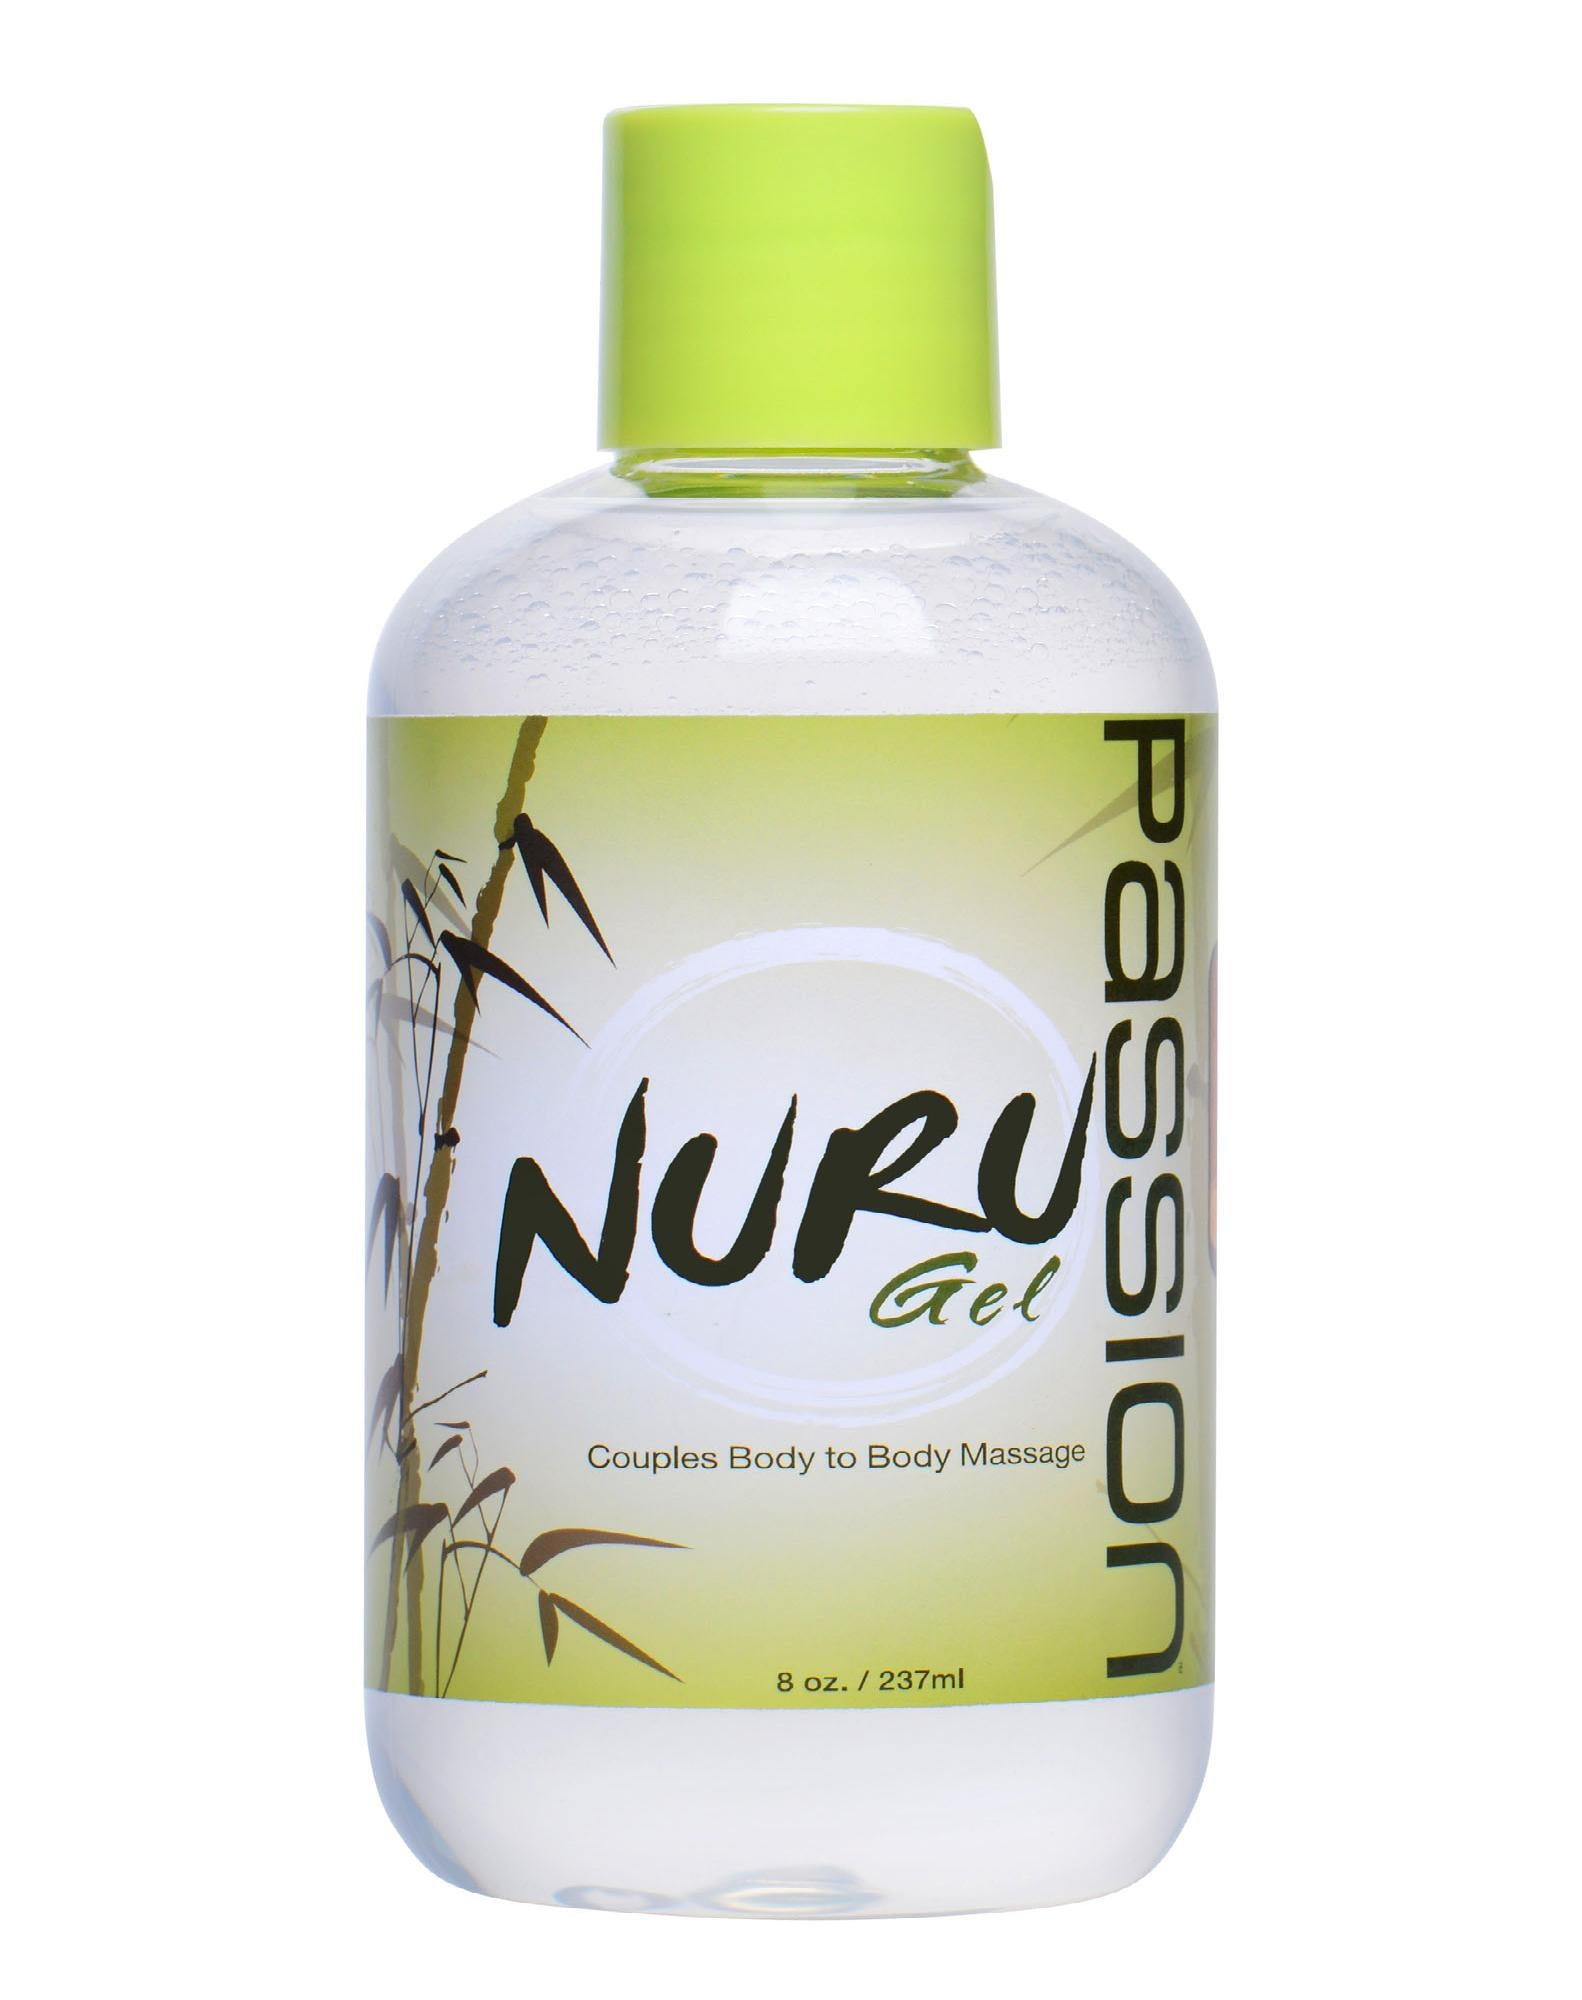 Nuru Couples Body to Body Gel Complete Massage Kit